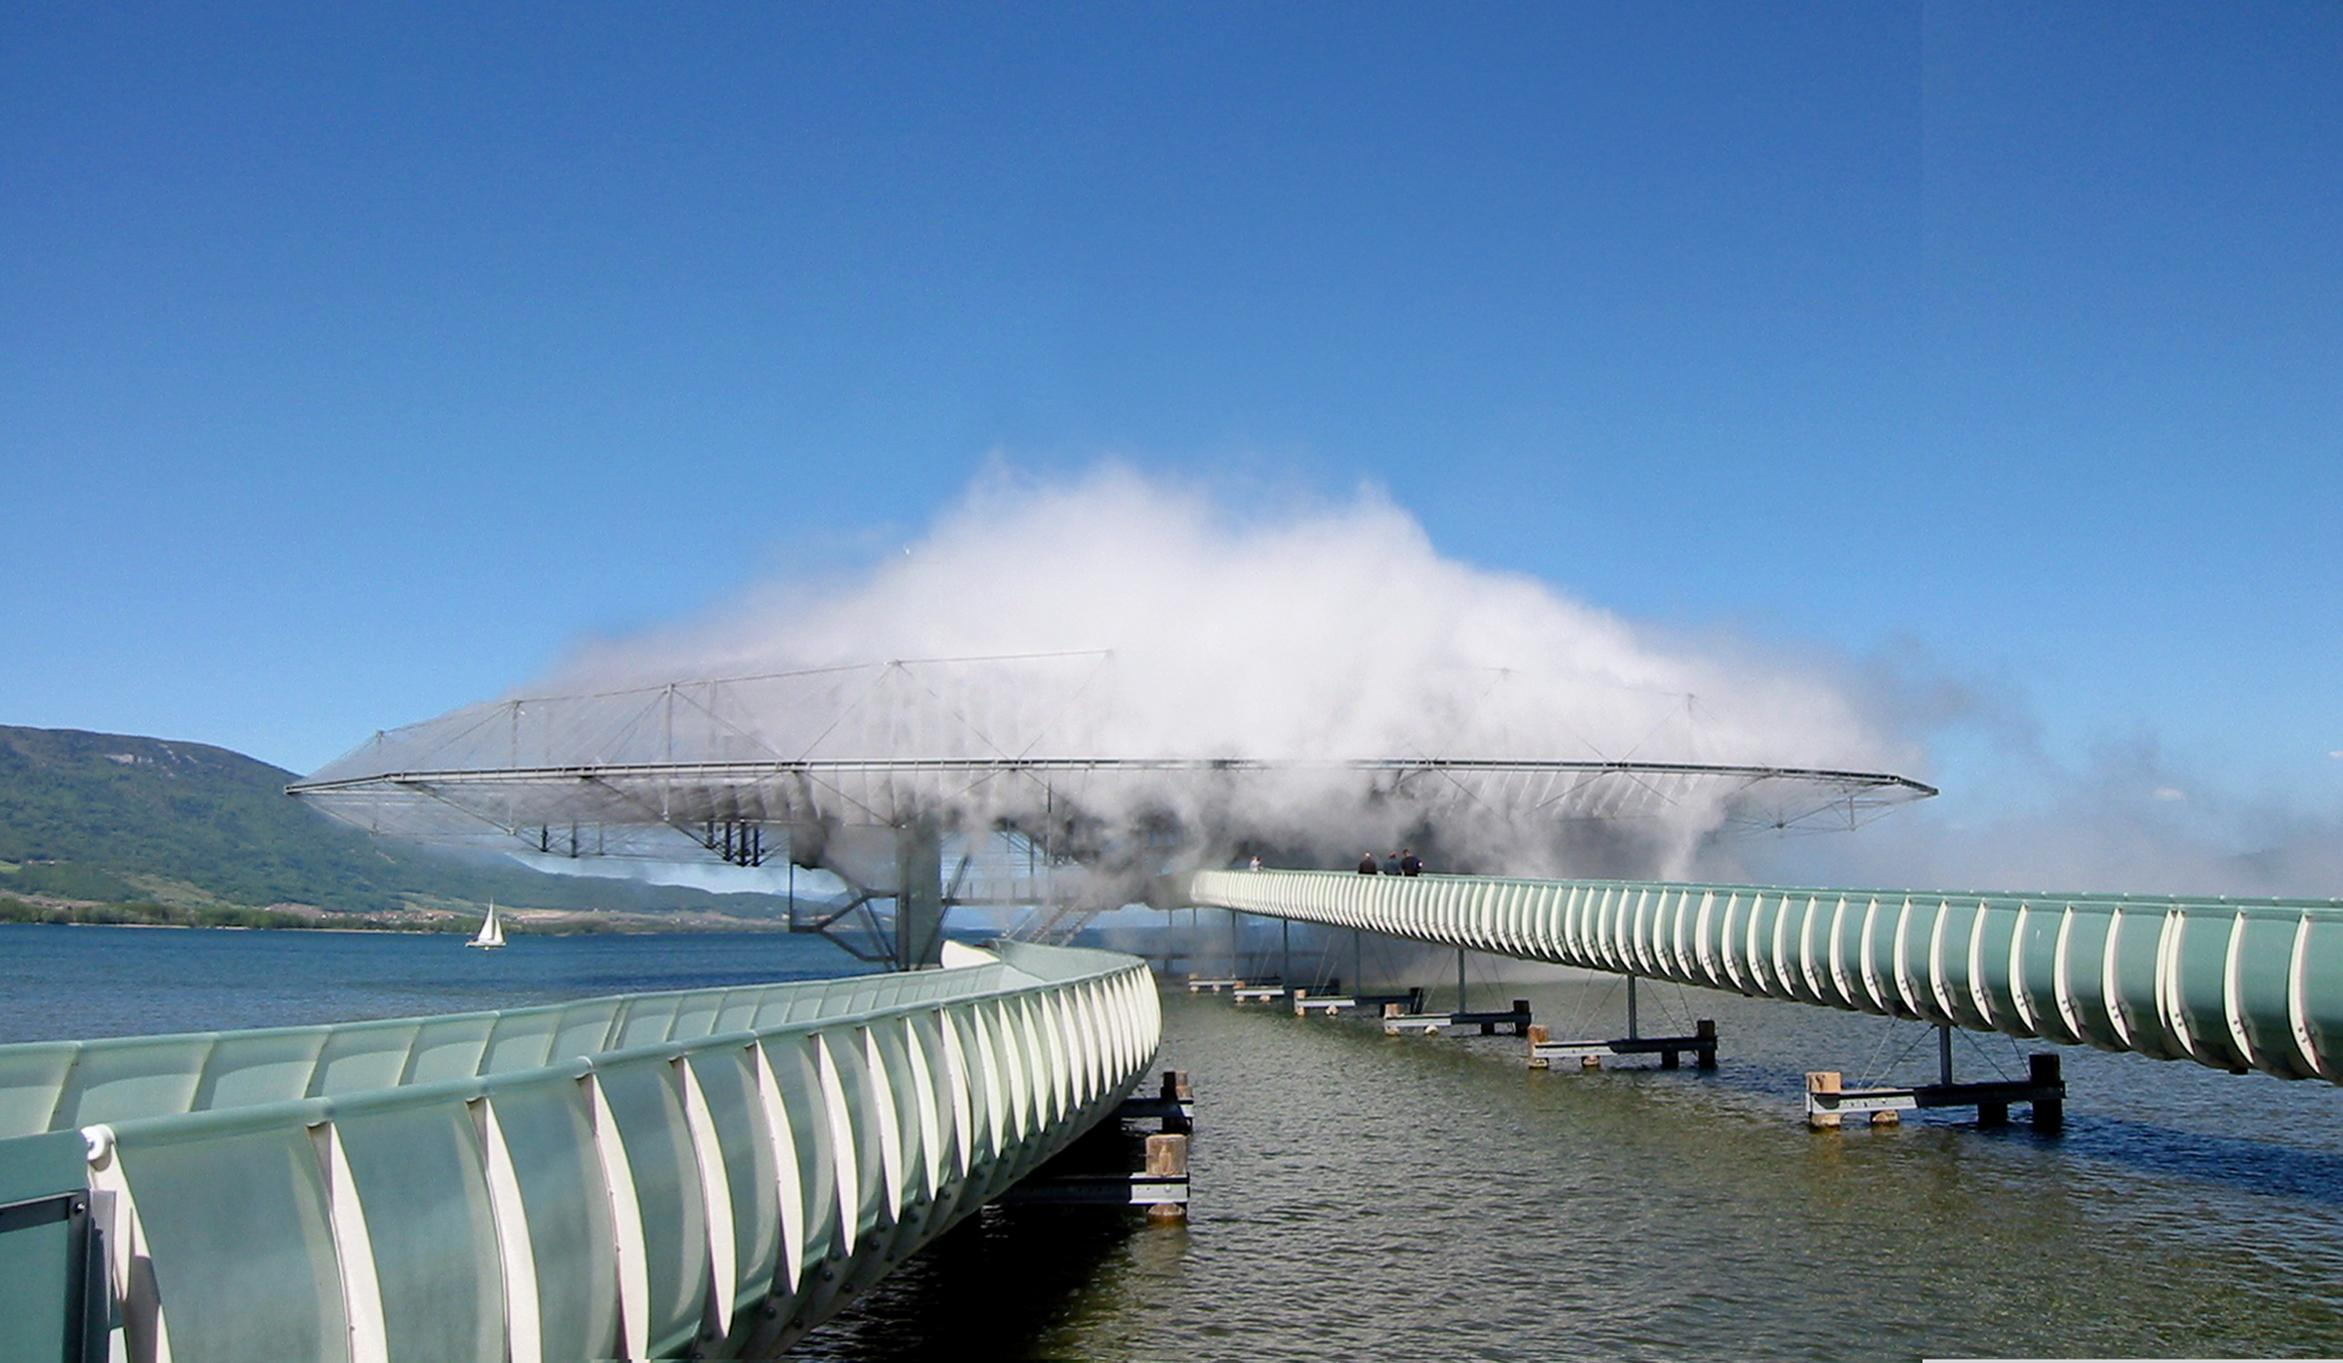 Two floating bridges lead to a saucer-shaped building, engulfed by mist, in the middle of a lake.